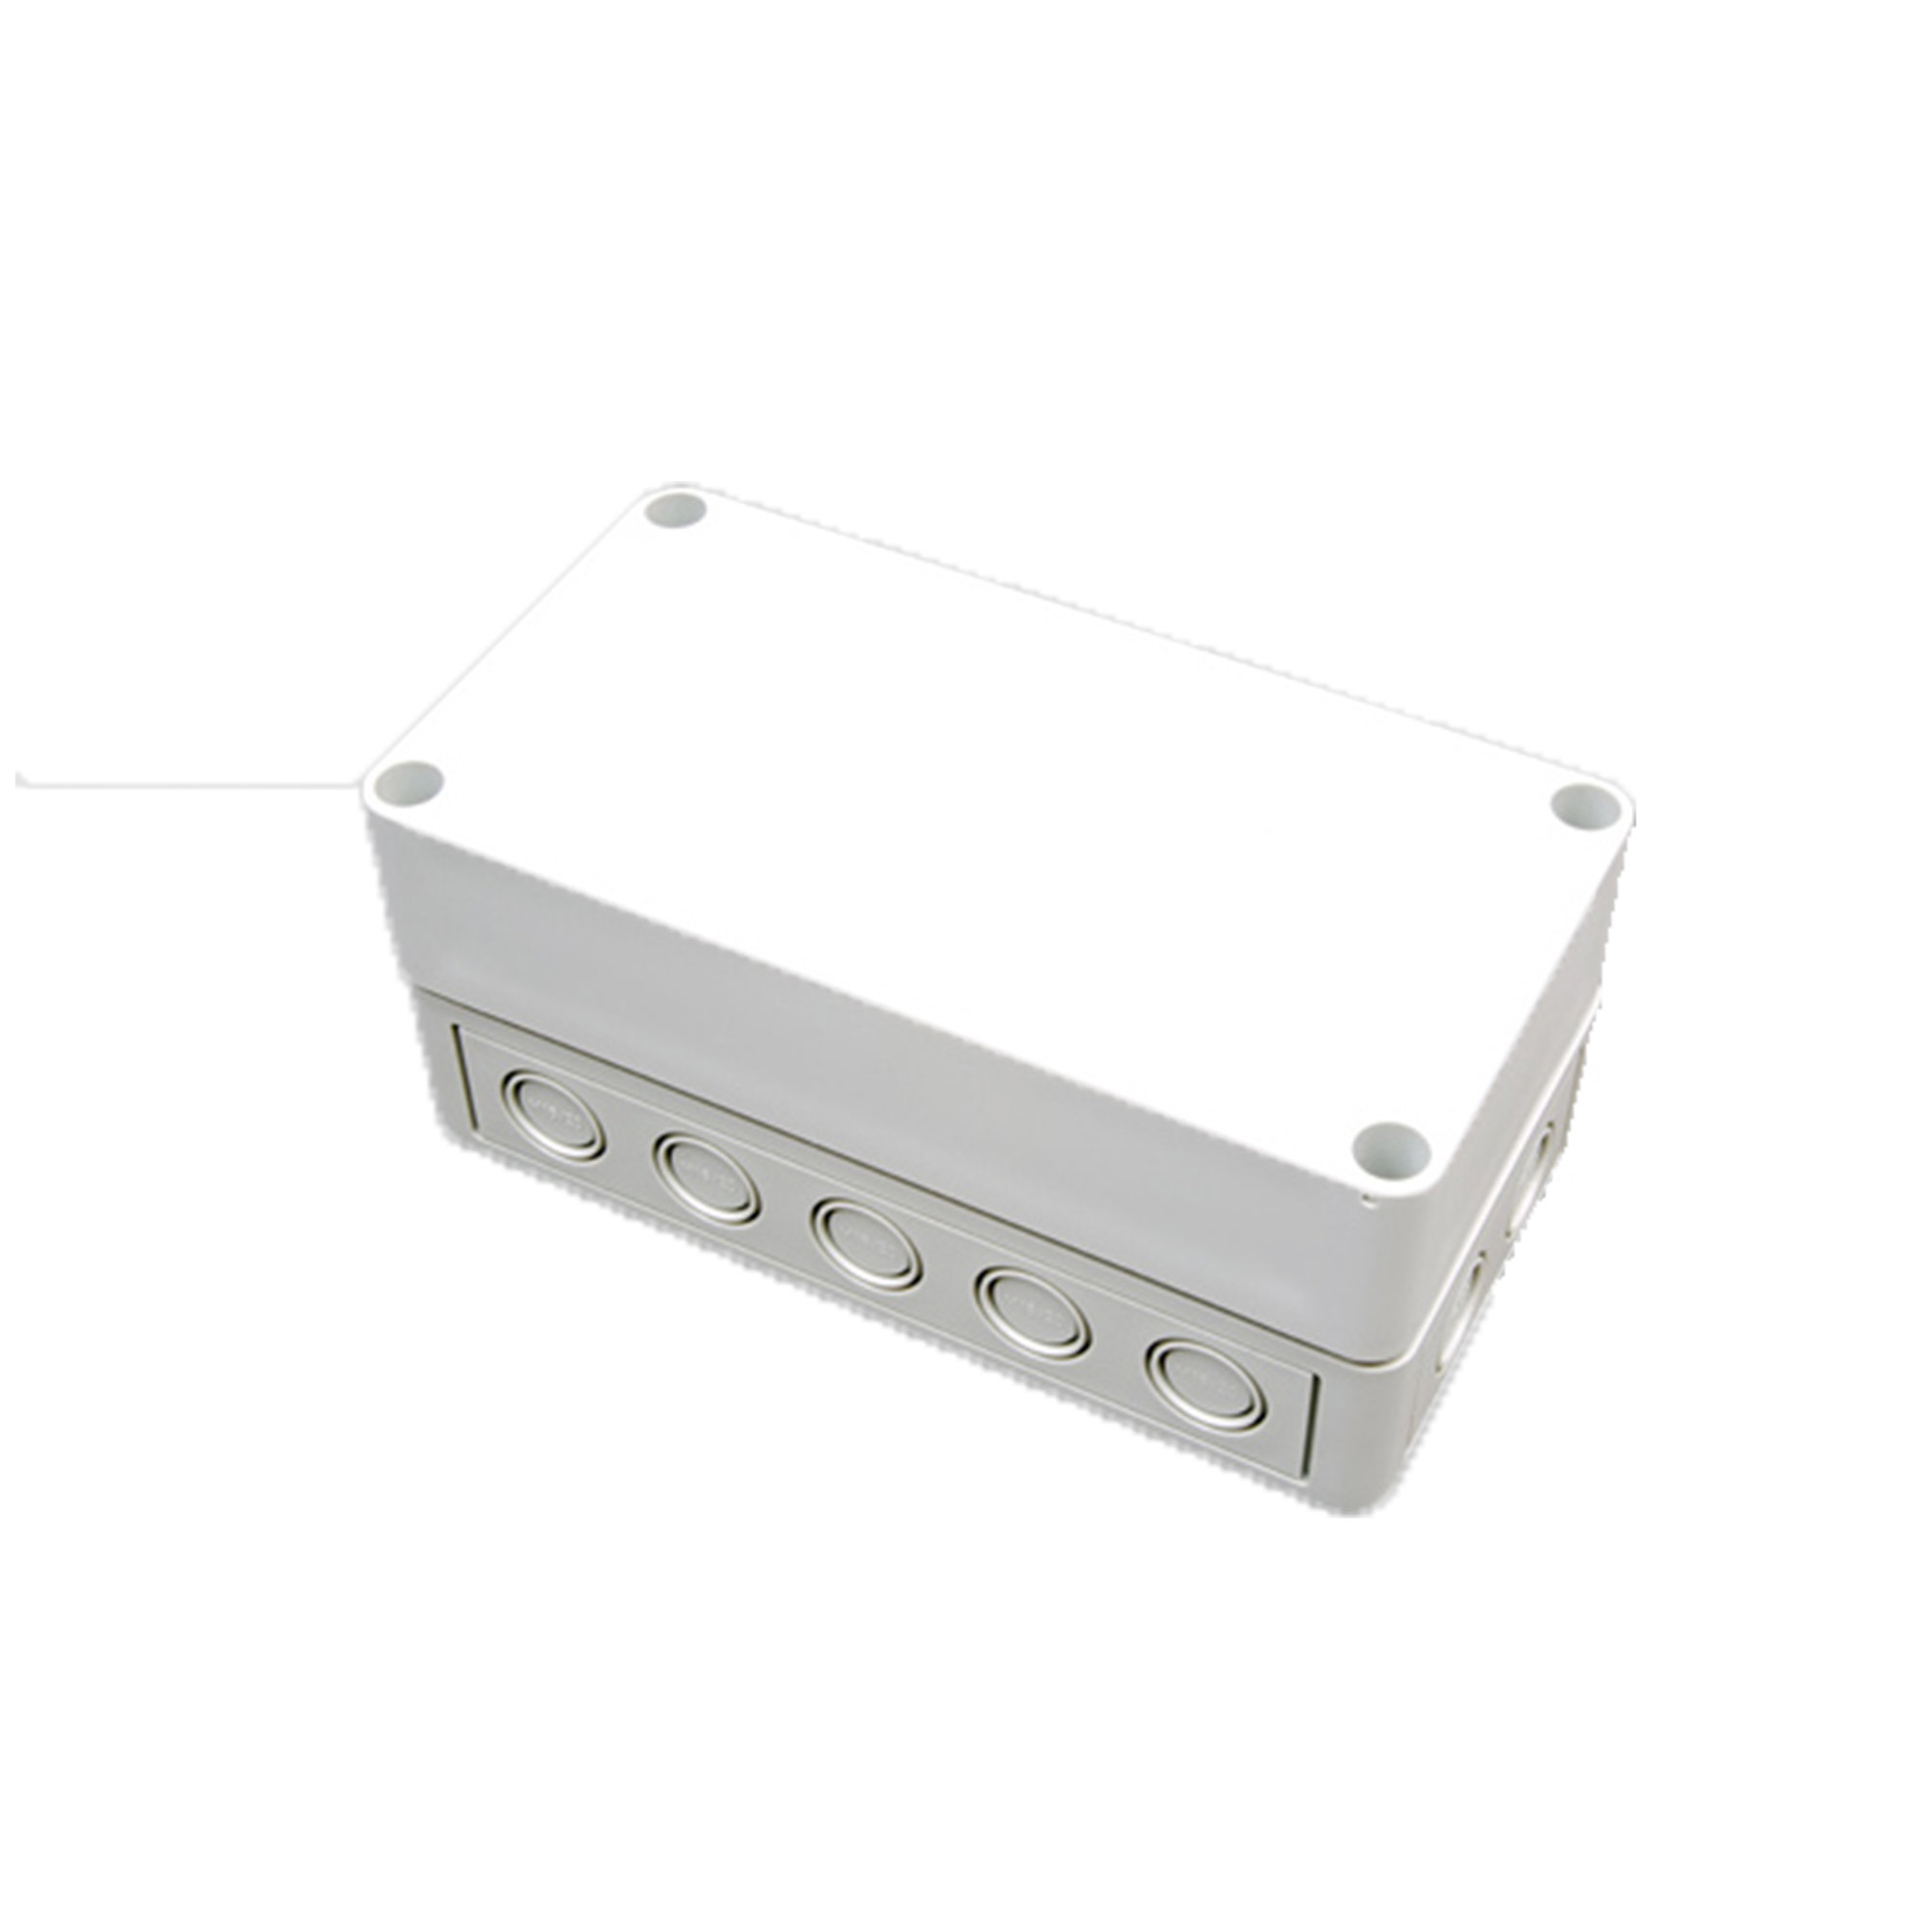 IP66 enclosure for Driver Small